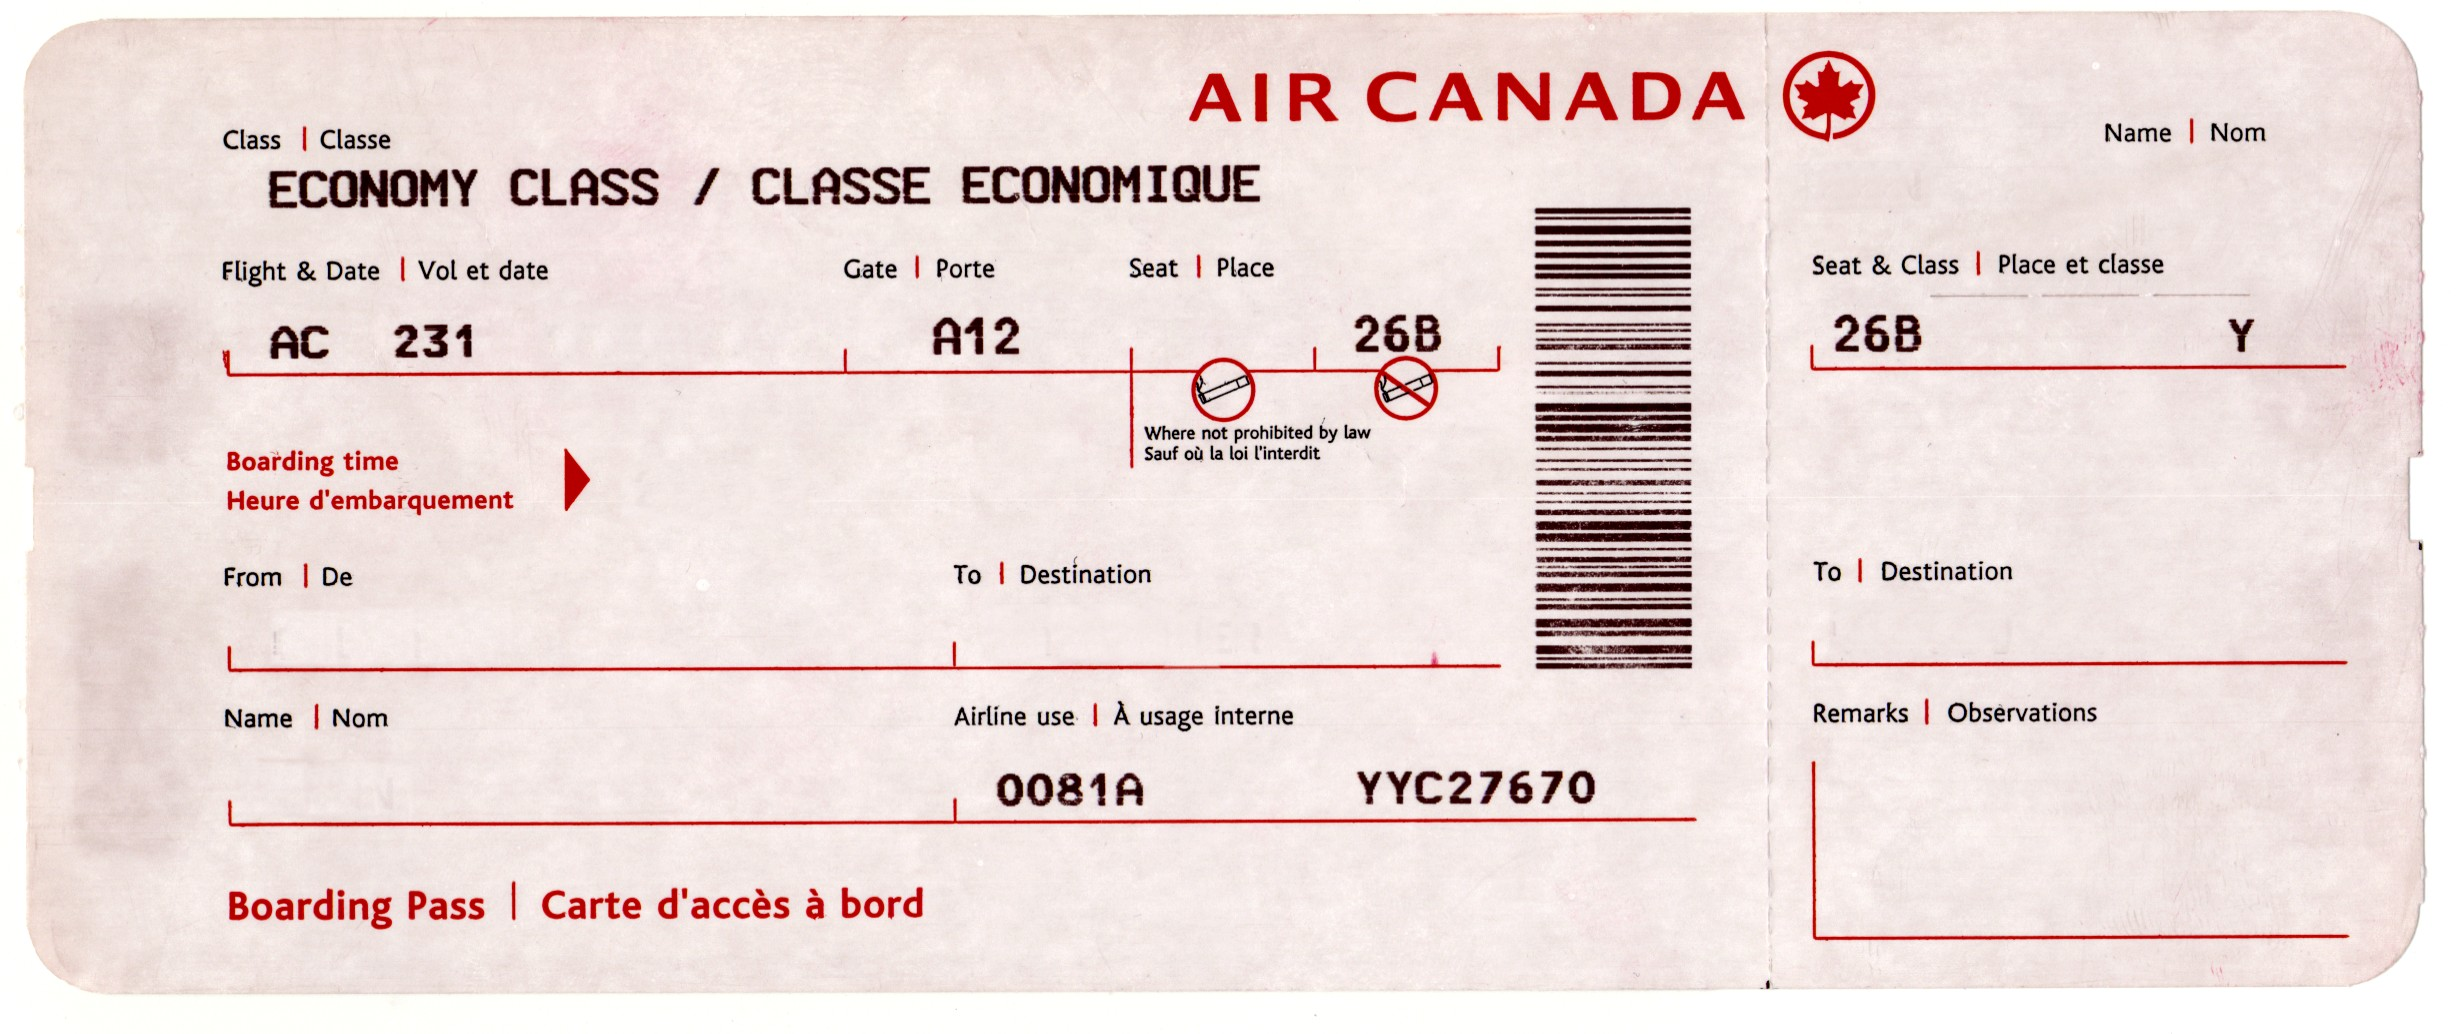 Klm Boarding Pass Sample Tickets Pictures to pi...